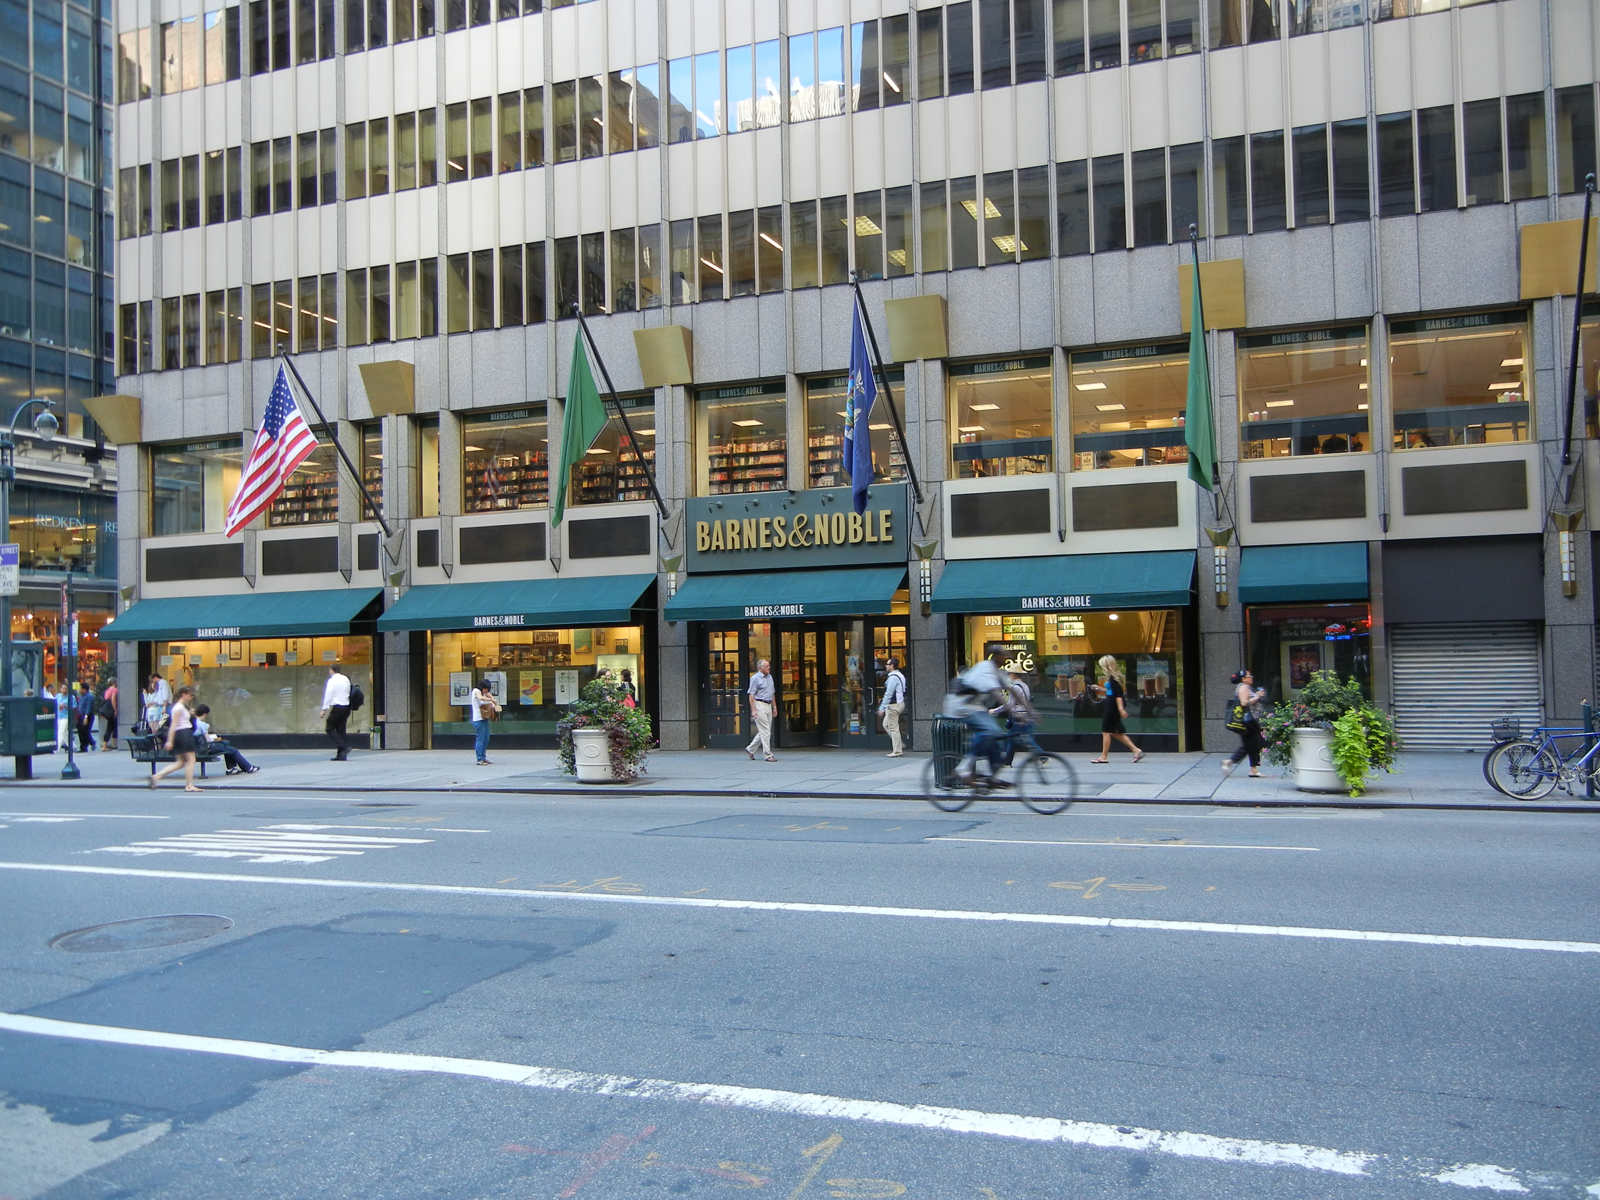 facade-transparent-led-display-screen-windows-barnes-and-noble